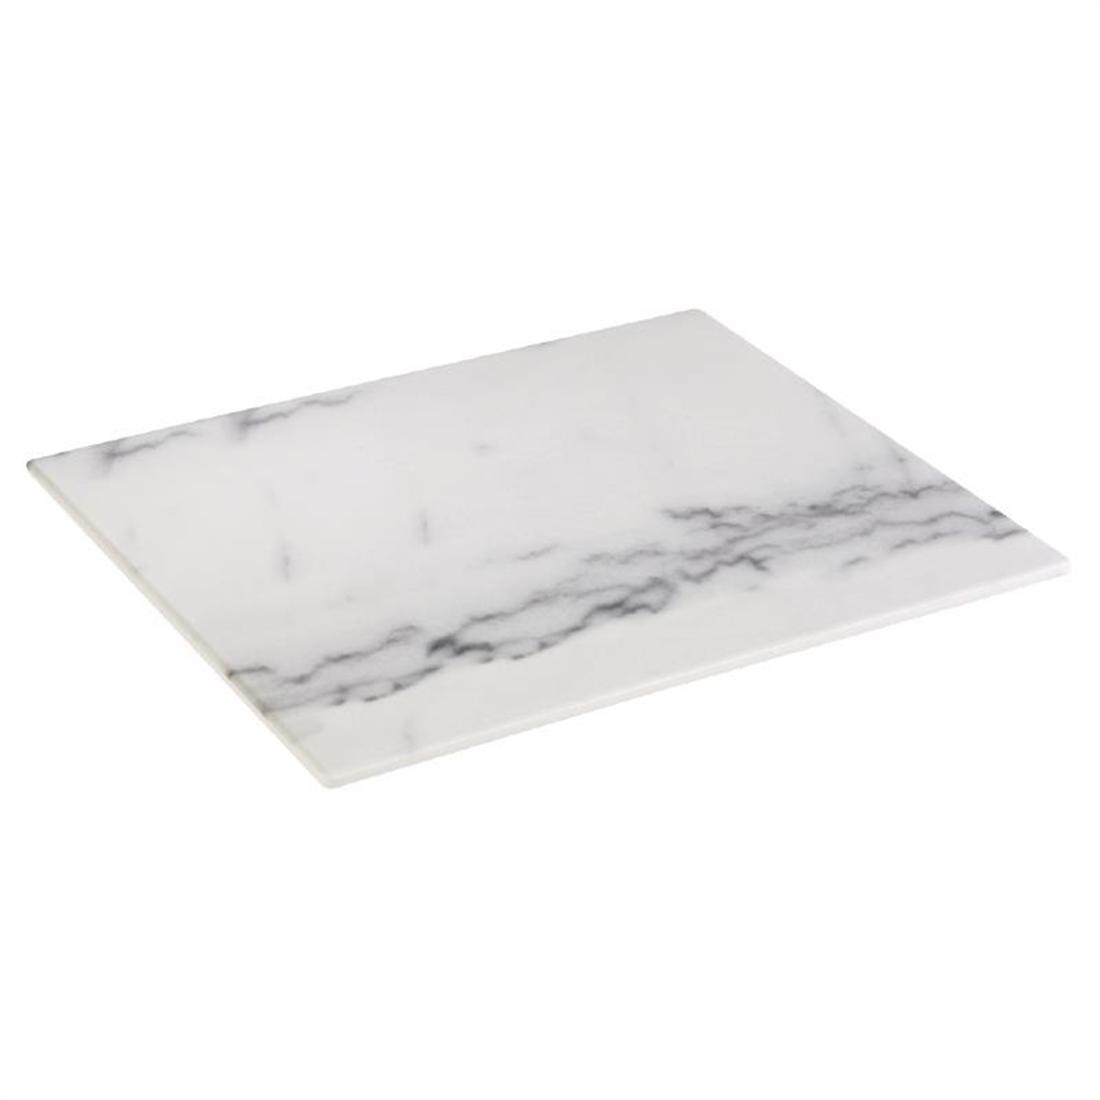 HC753 - Z-DISCONTINUED APS Melamine Tray Marble GN 1/2 - Each - HC753